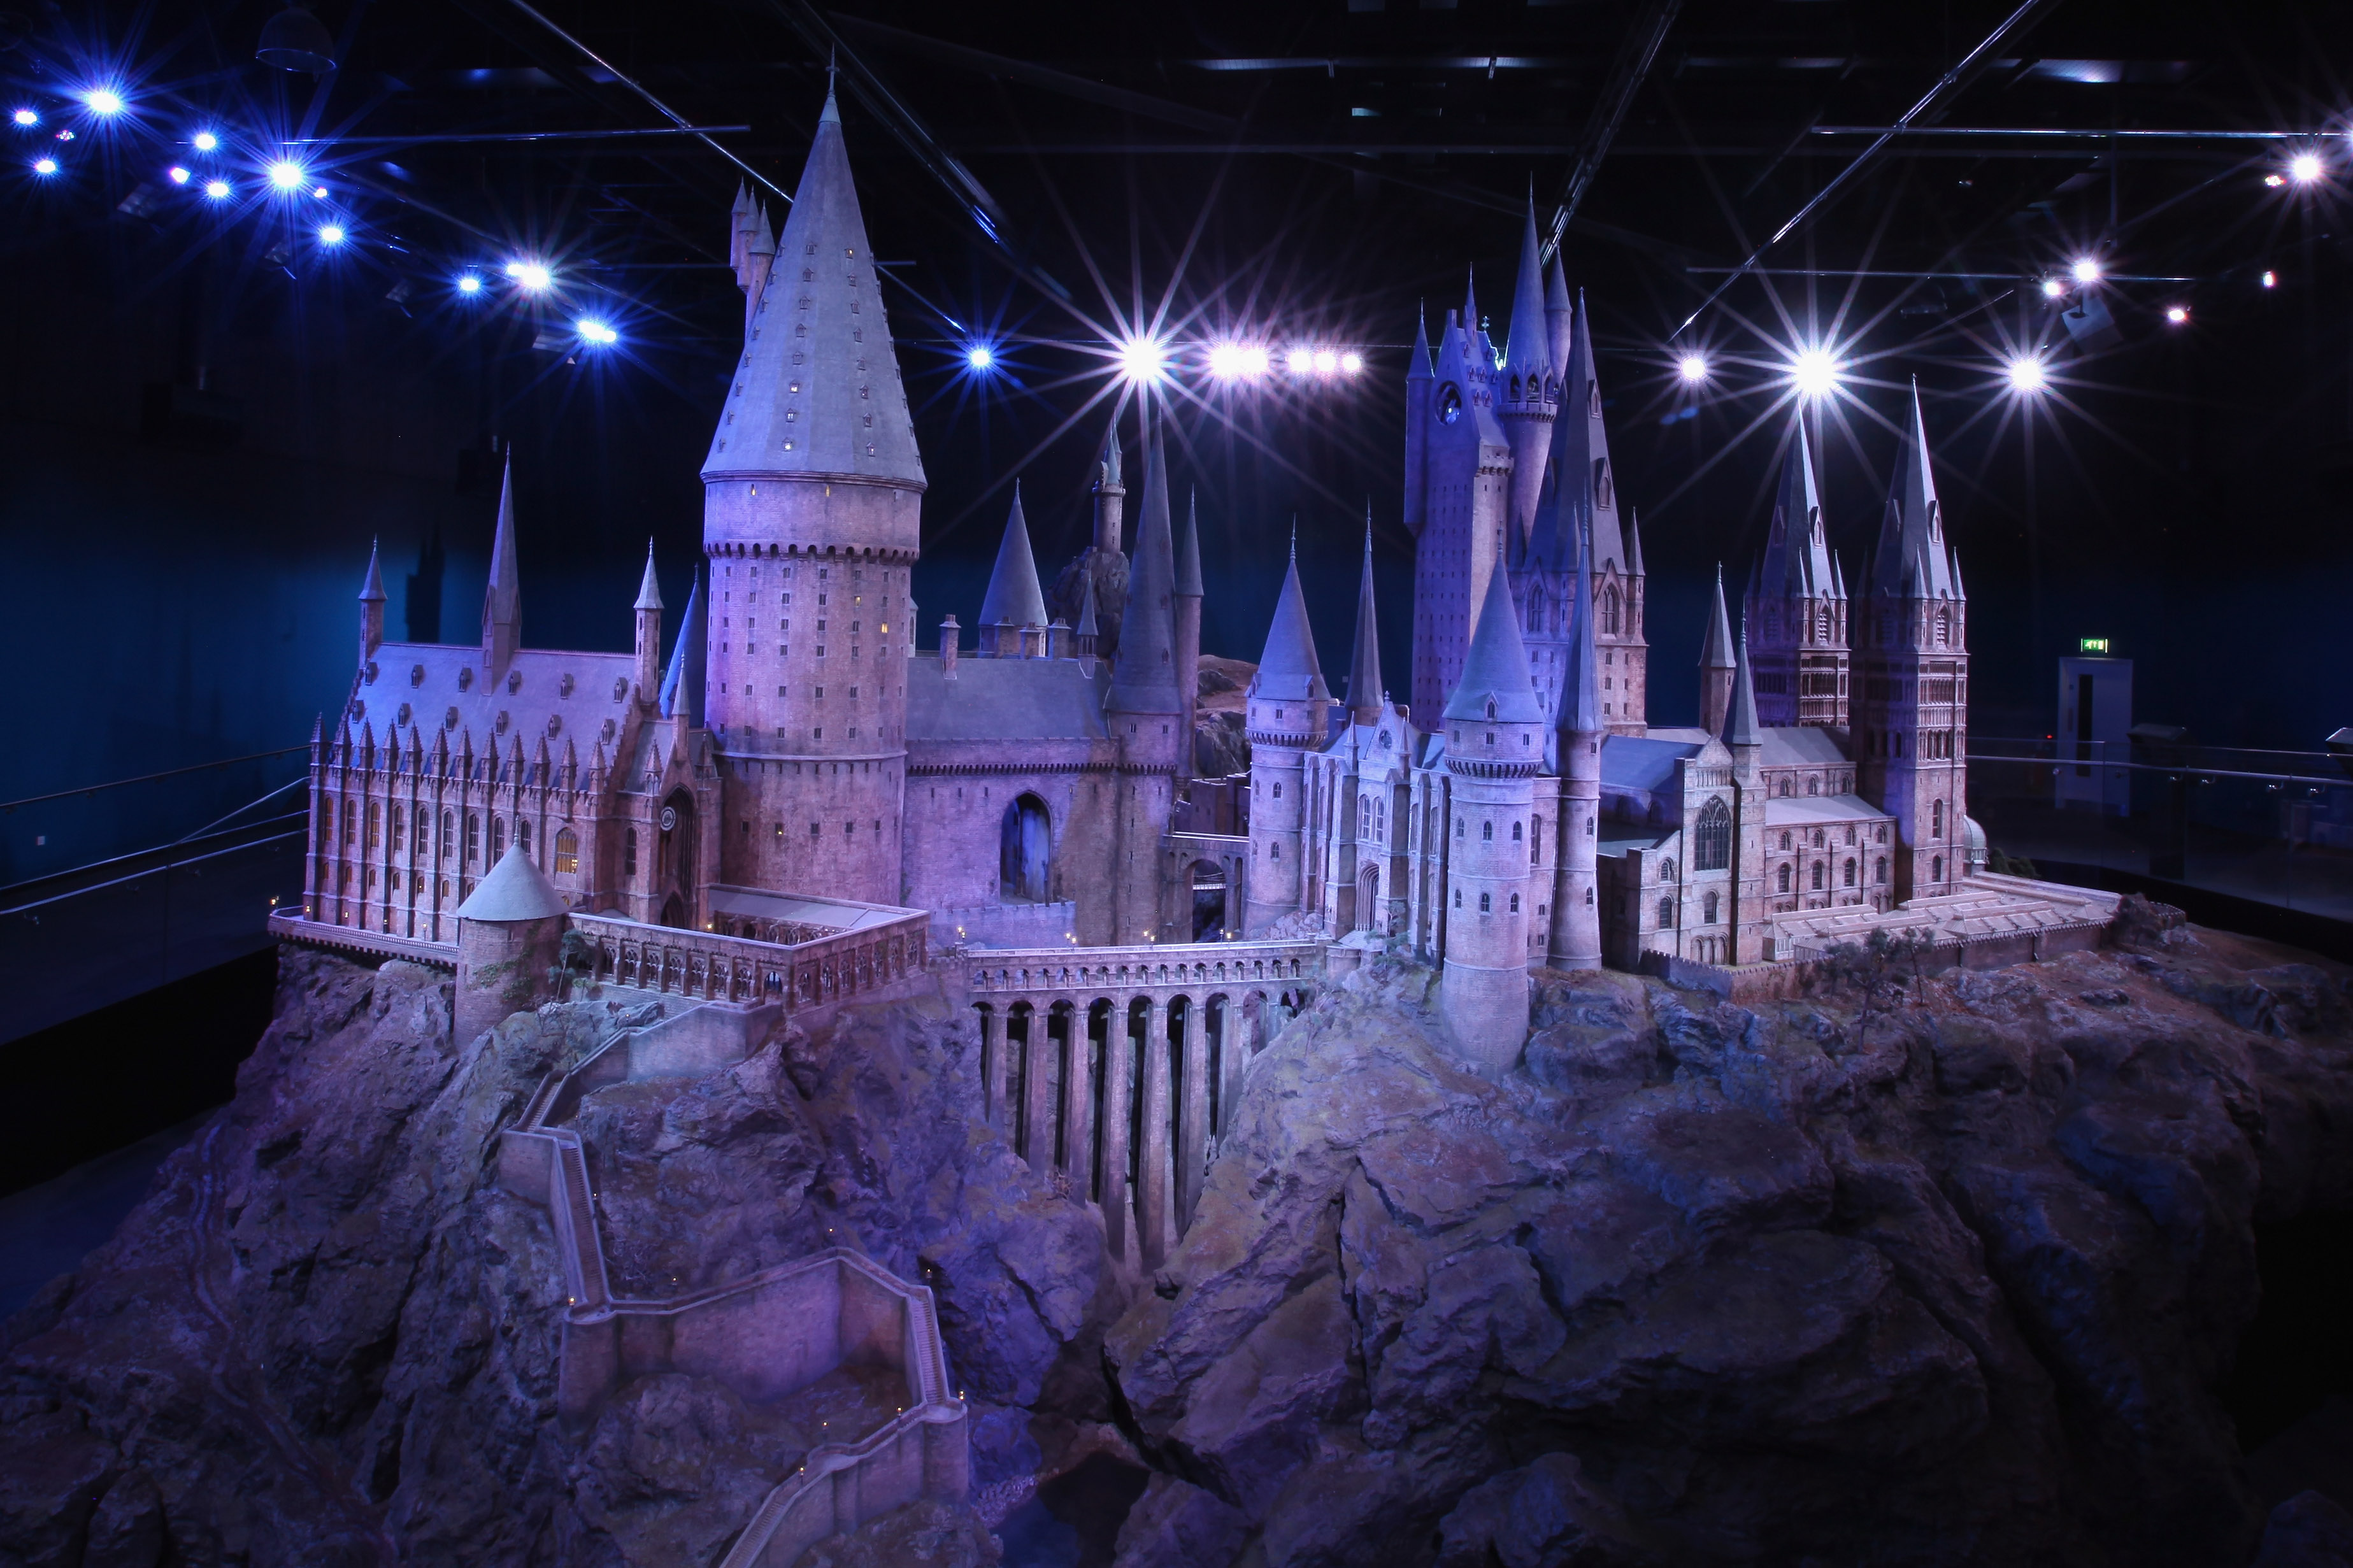 �harry potter� is coming to imax theaters for a movie marathon